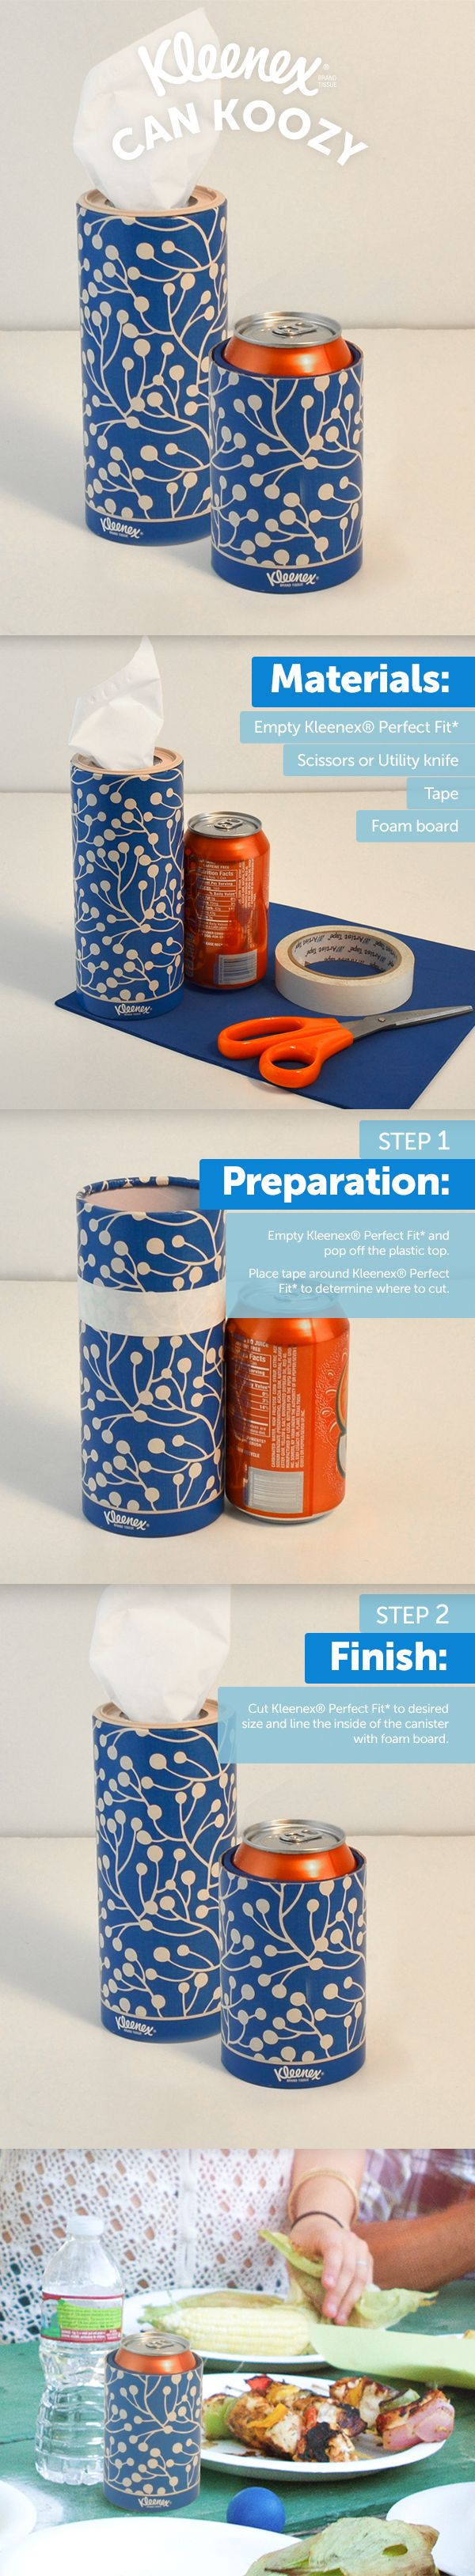 Reuse a Kleenex® Perfect Fit* for a DIY soft drink can koozy.